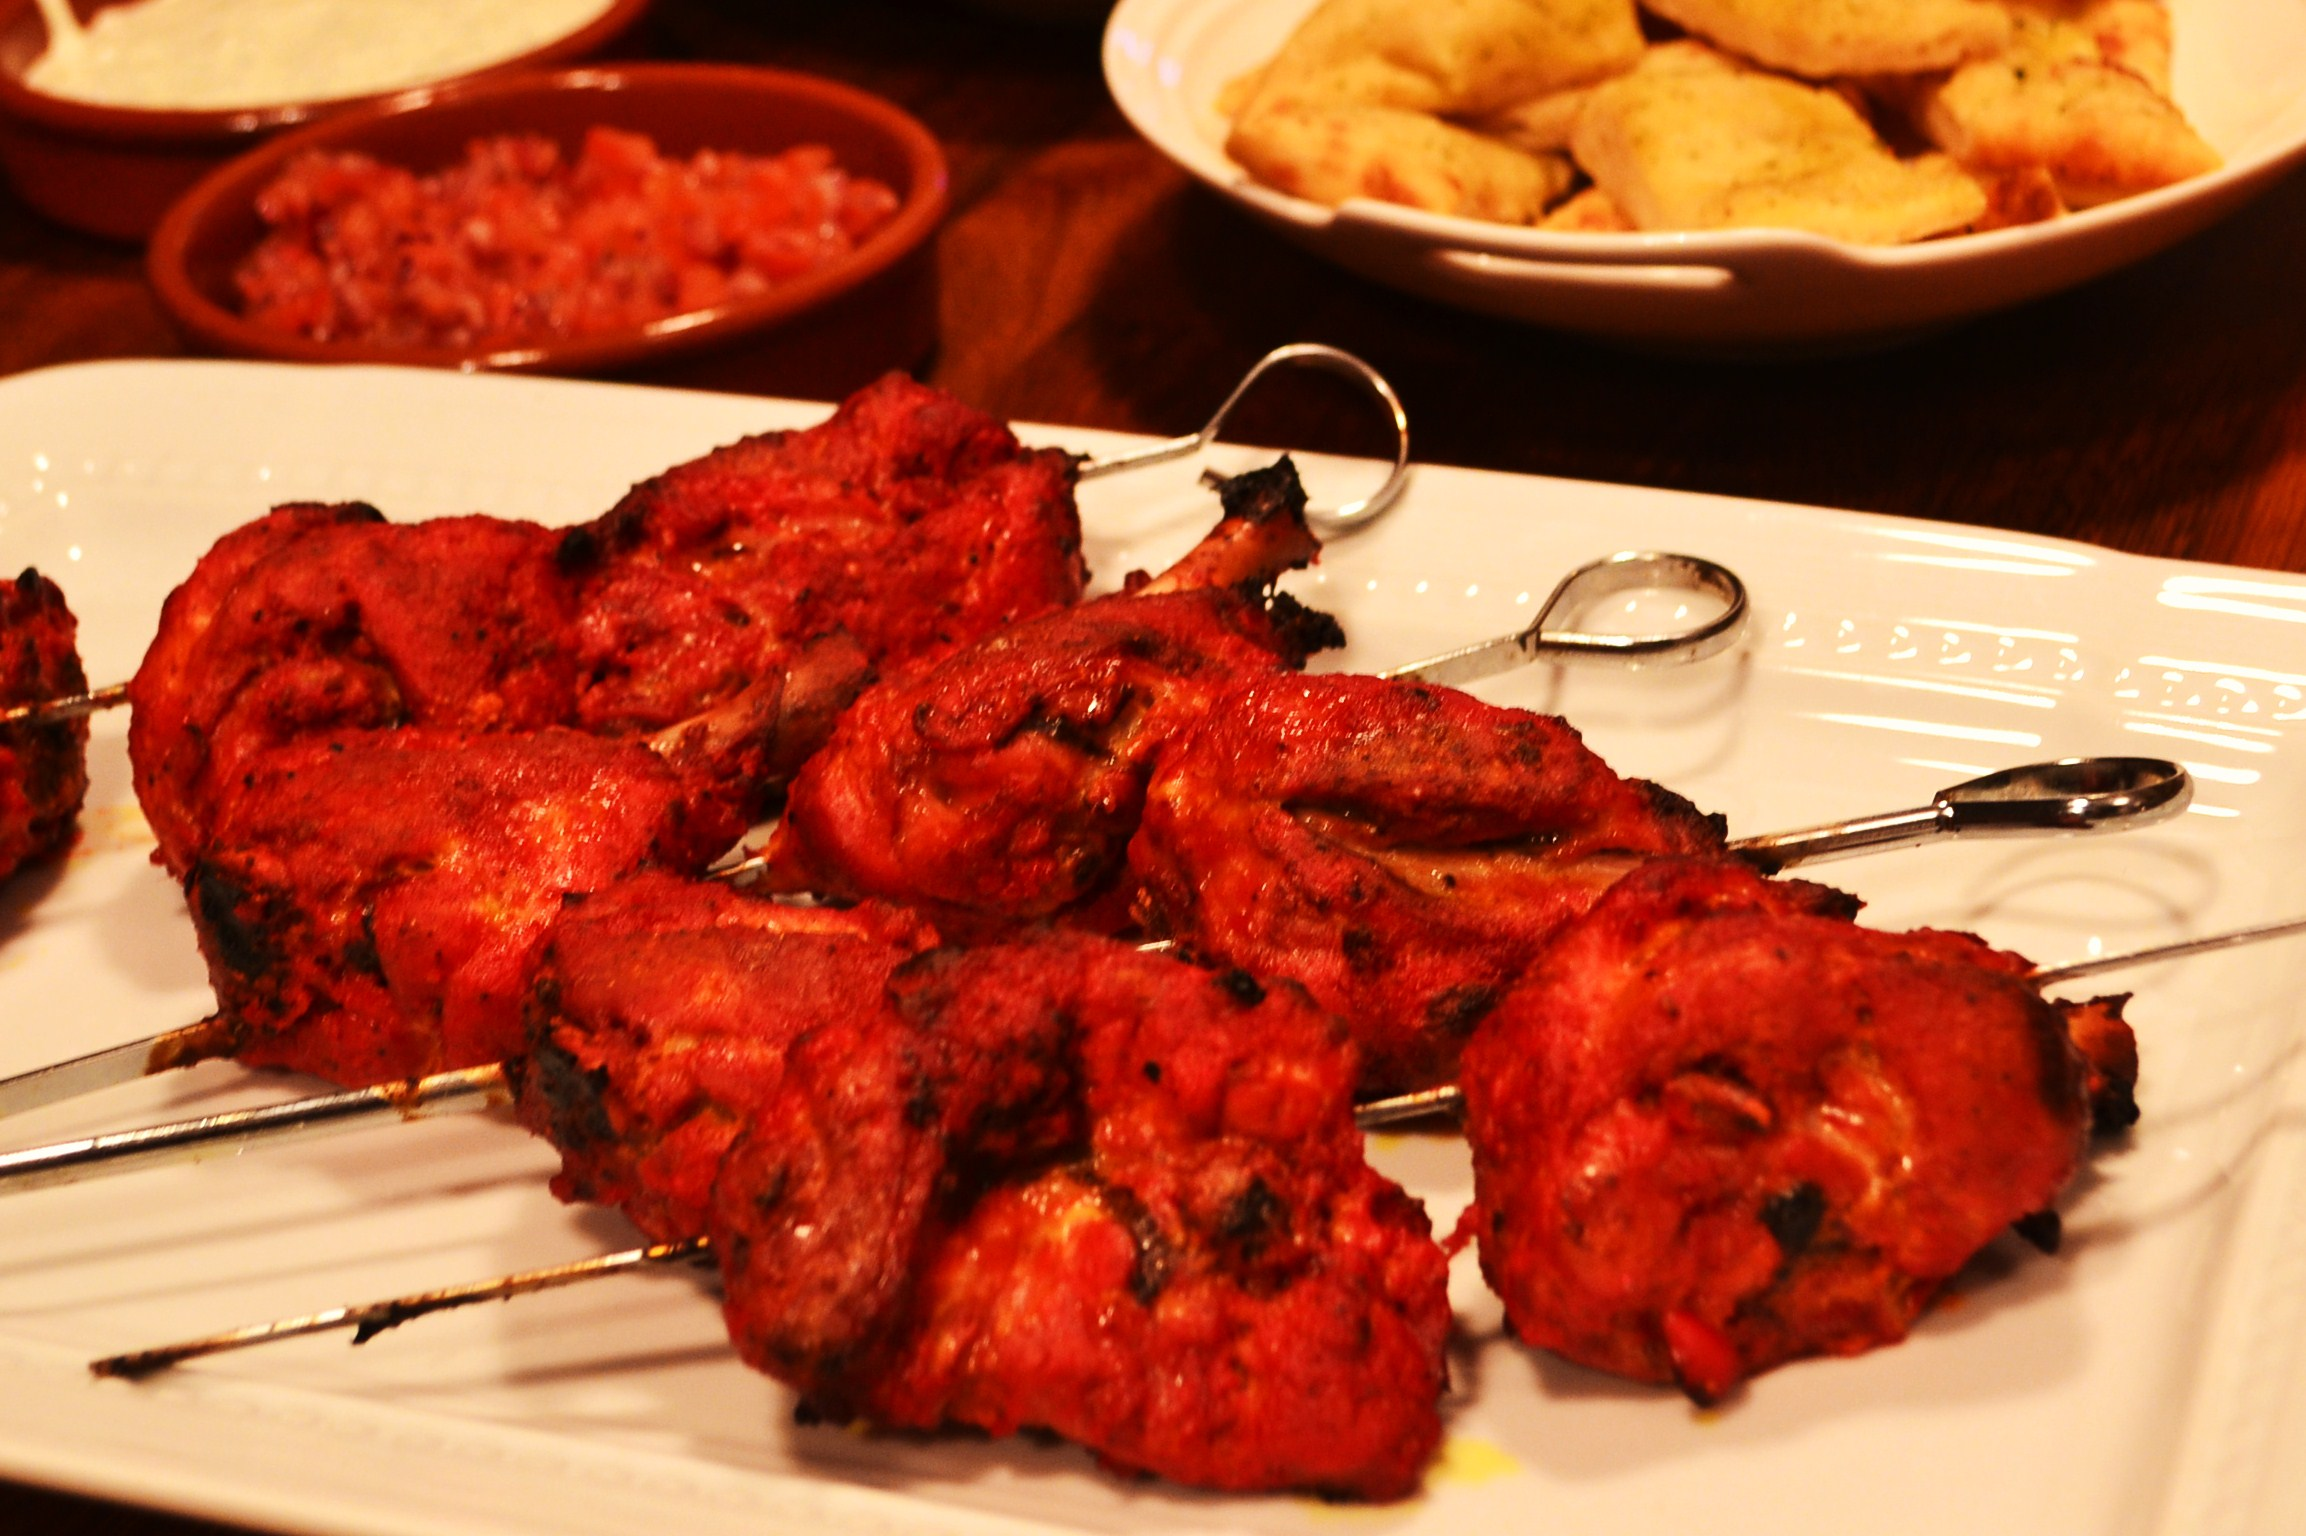 bread tandoori chicken tandoori chicken super easy tandoori chicken ...